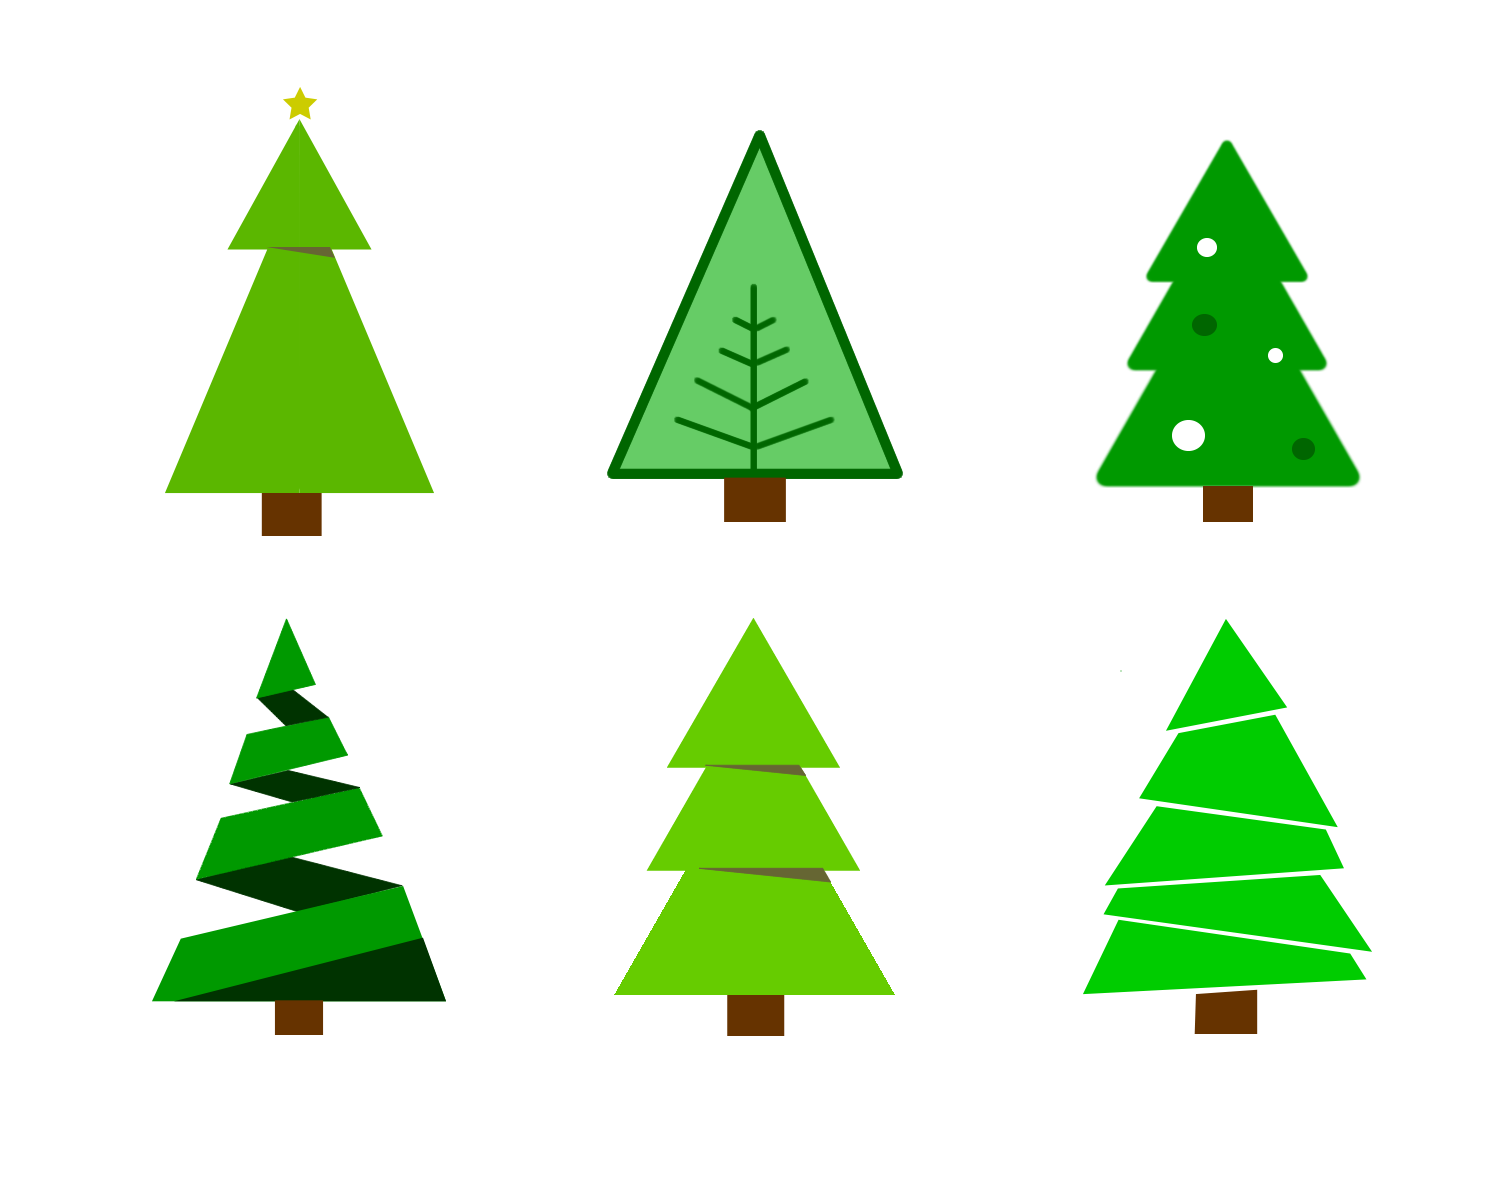 Christmas Tree Vector.Free Colour Chirstmas Tree Vector Graphics The Web Taylor